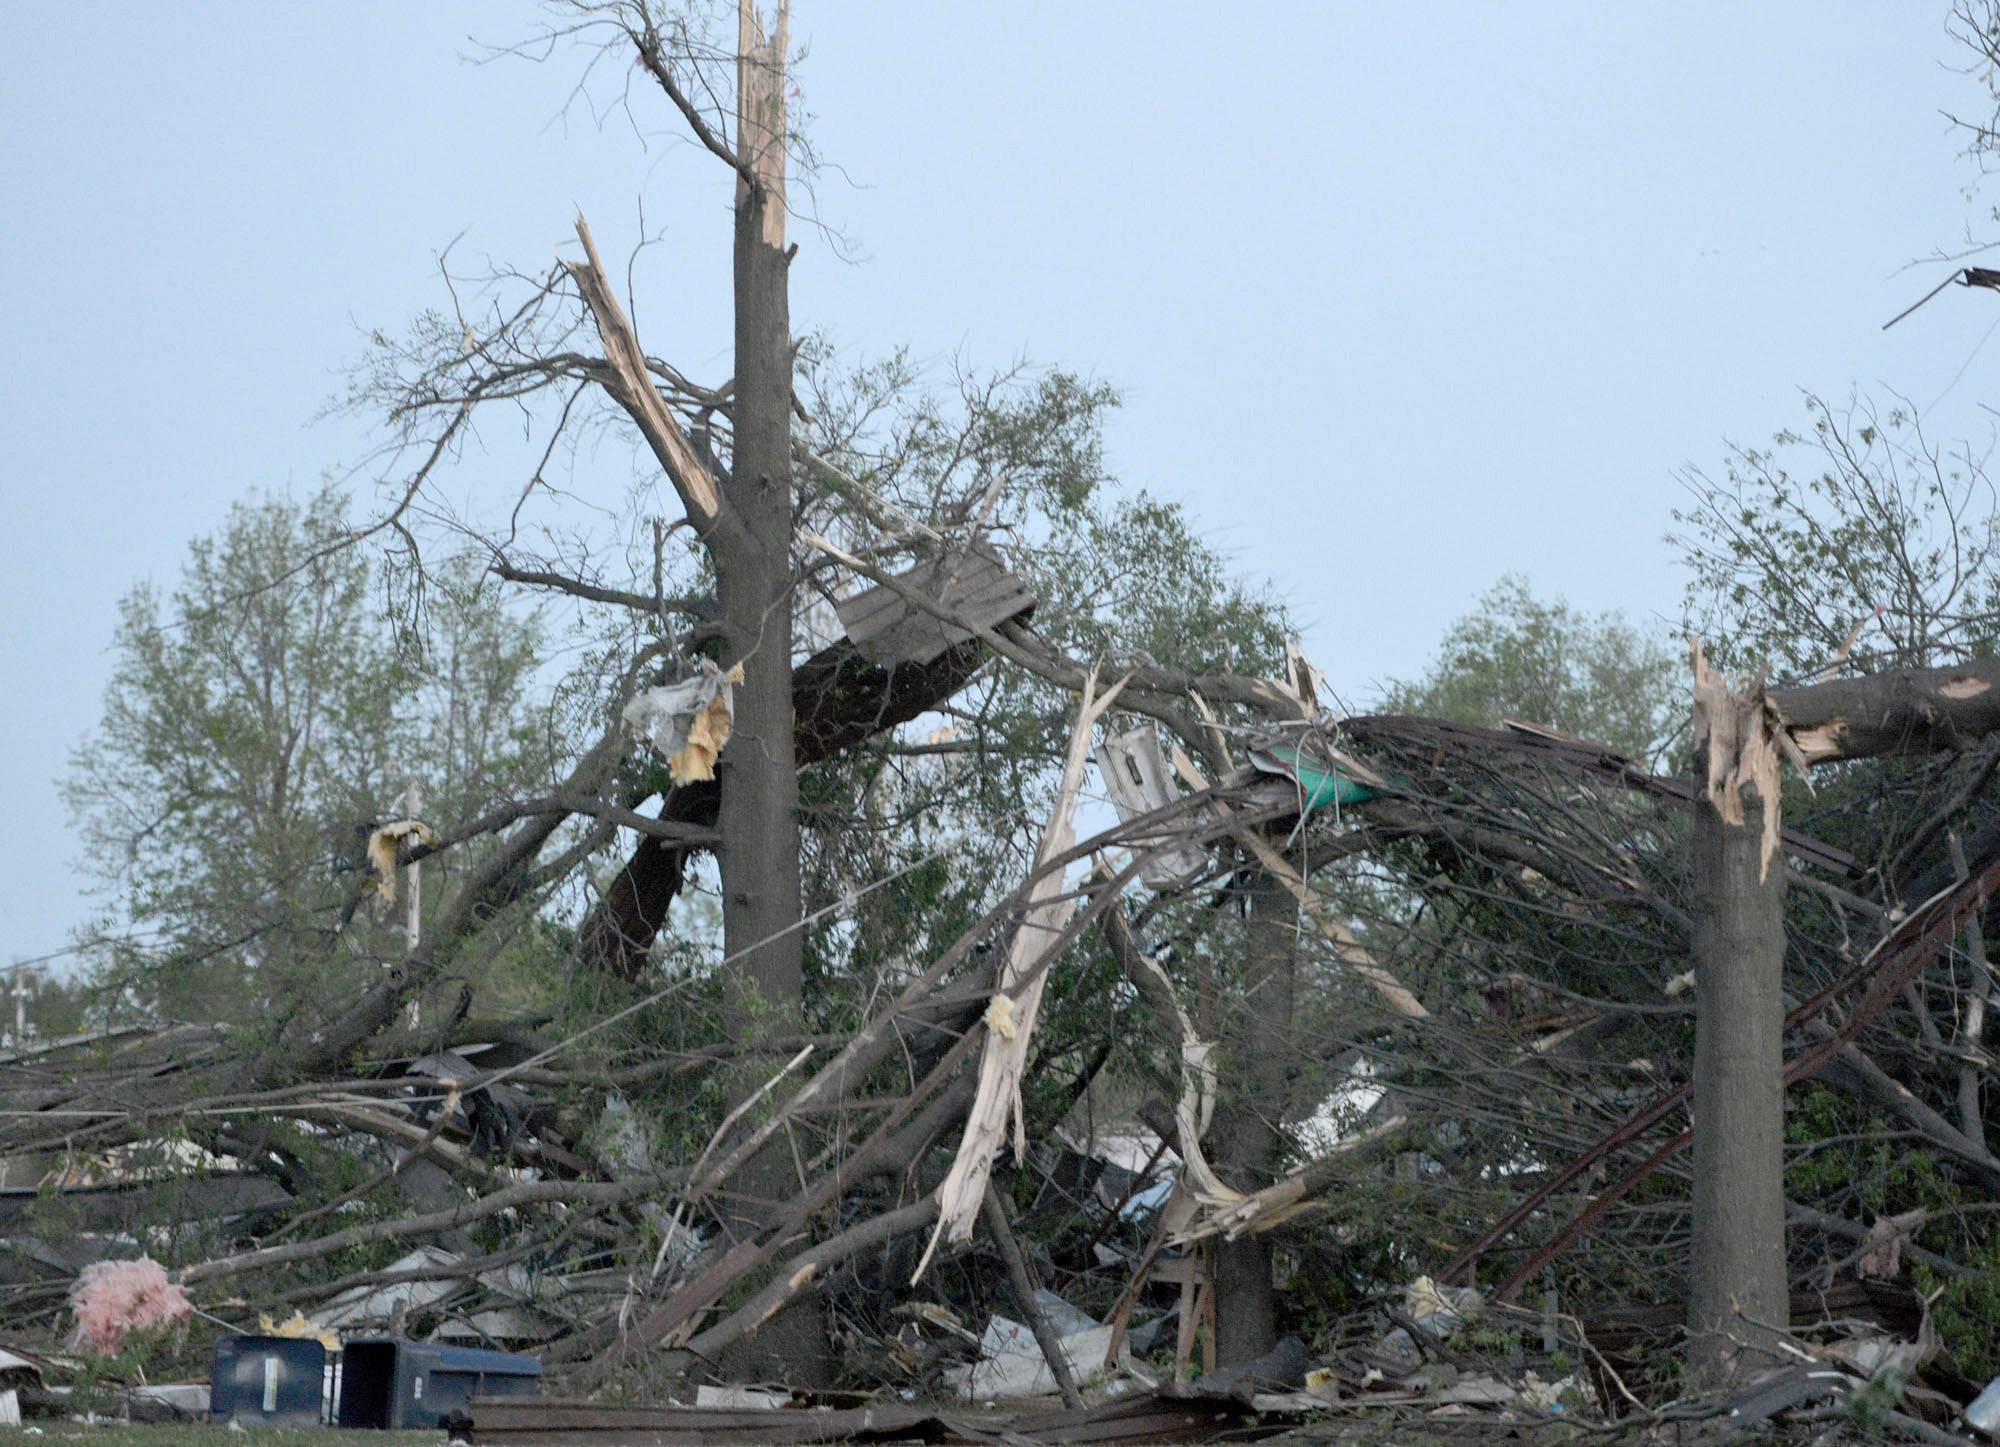 Twisted trees and power lines remain in a residential block near Military Avenue following the tornado in Baxter Springs, Kan., Sunday, April 27, 2014. A powerful storm system rumbled through the central and southern United States on Sunday, spawning a massive tornado that carved through Little Rock's northern suburbs and another that hit Oklahoma and Kansas.